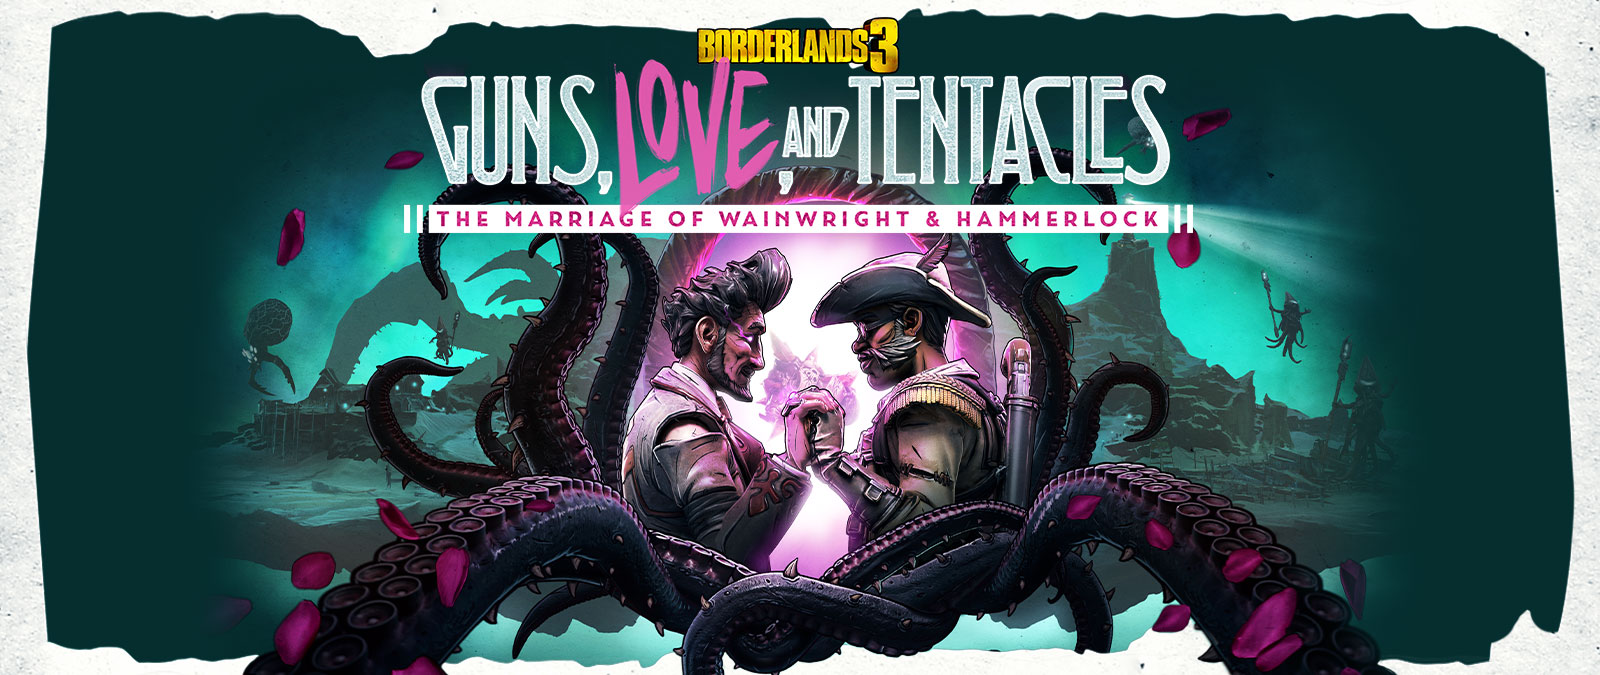 Borderlands 3, Guns, Love, and Tentacles, The marriage of Wainwright and Hammerlock, Wainwright and Hammerlock hold hands in a pool of bright light.